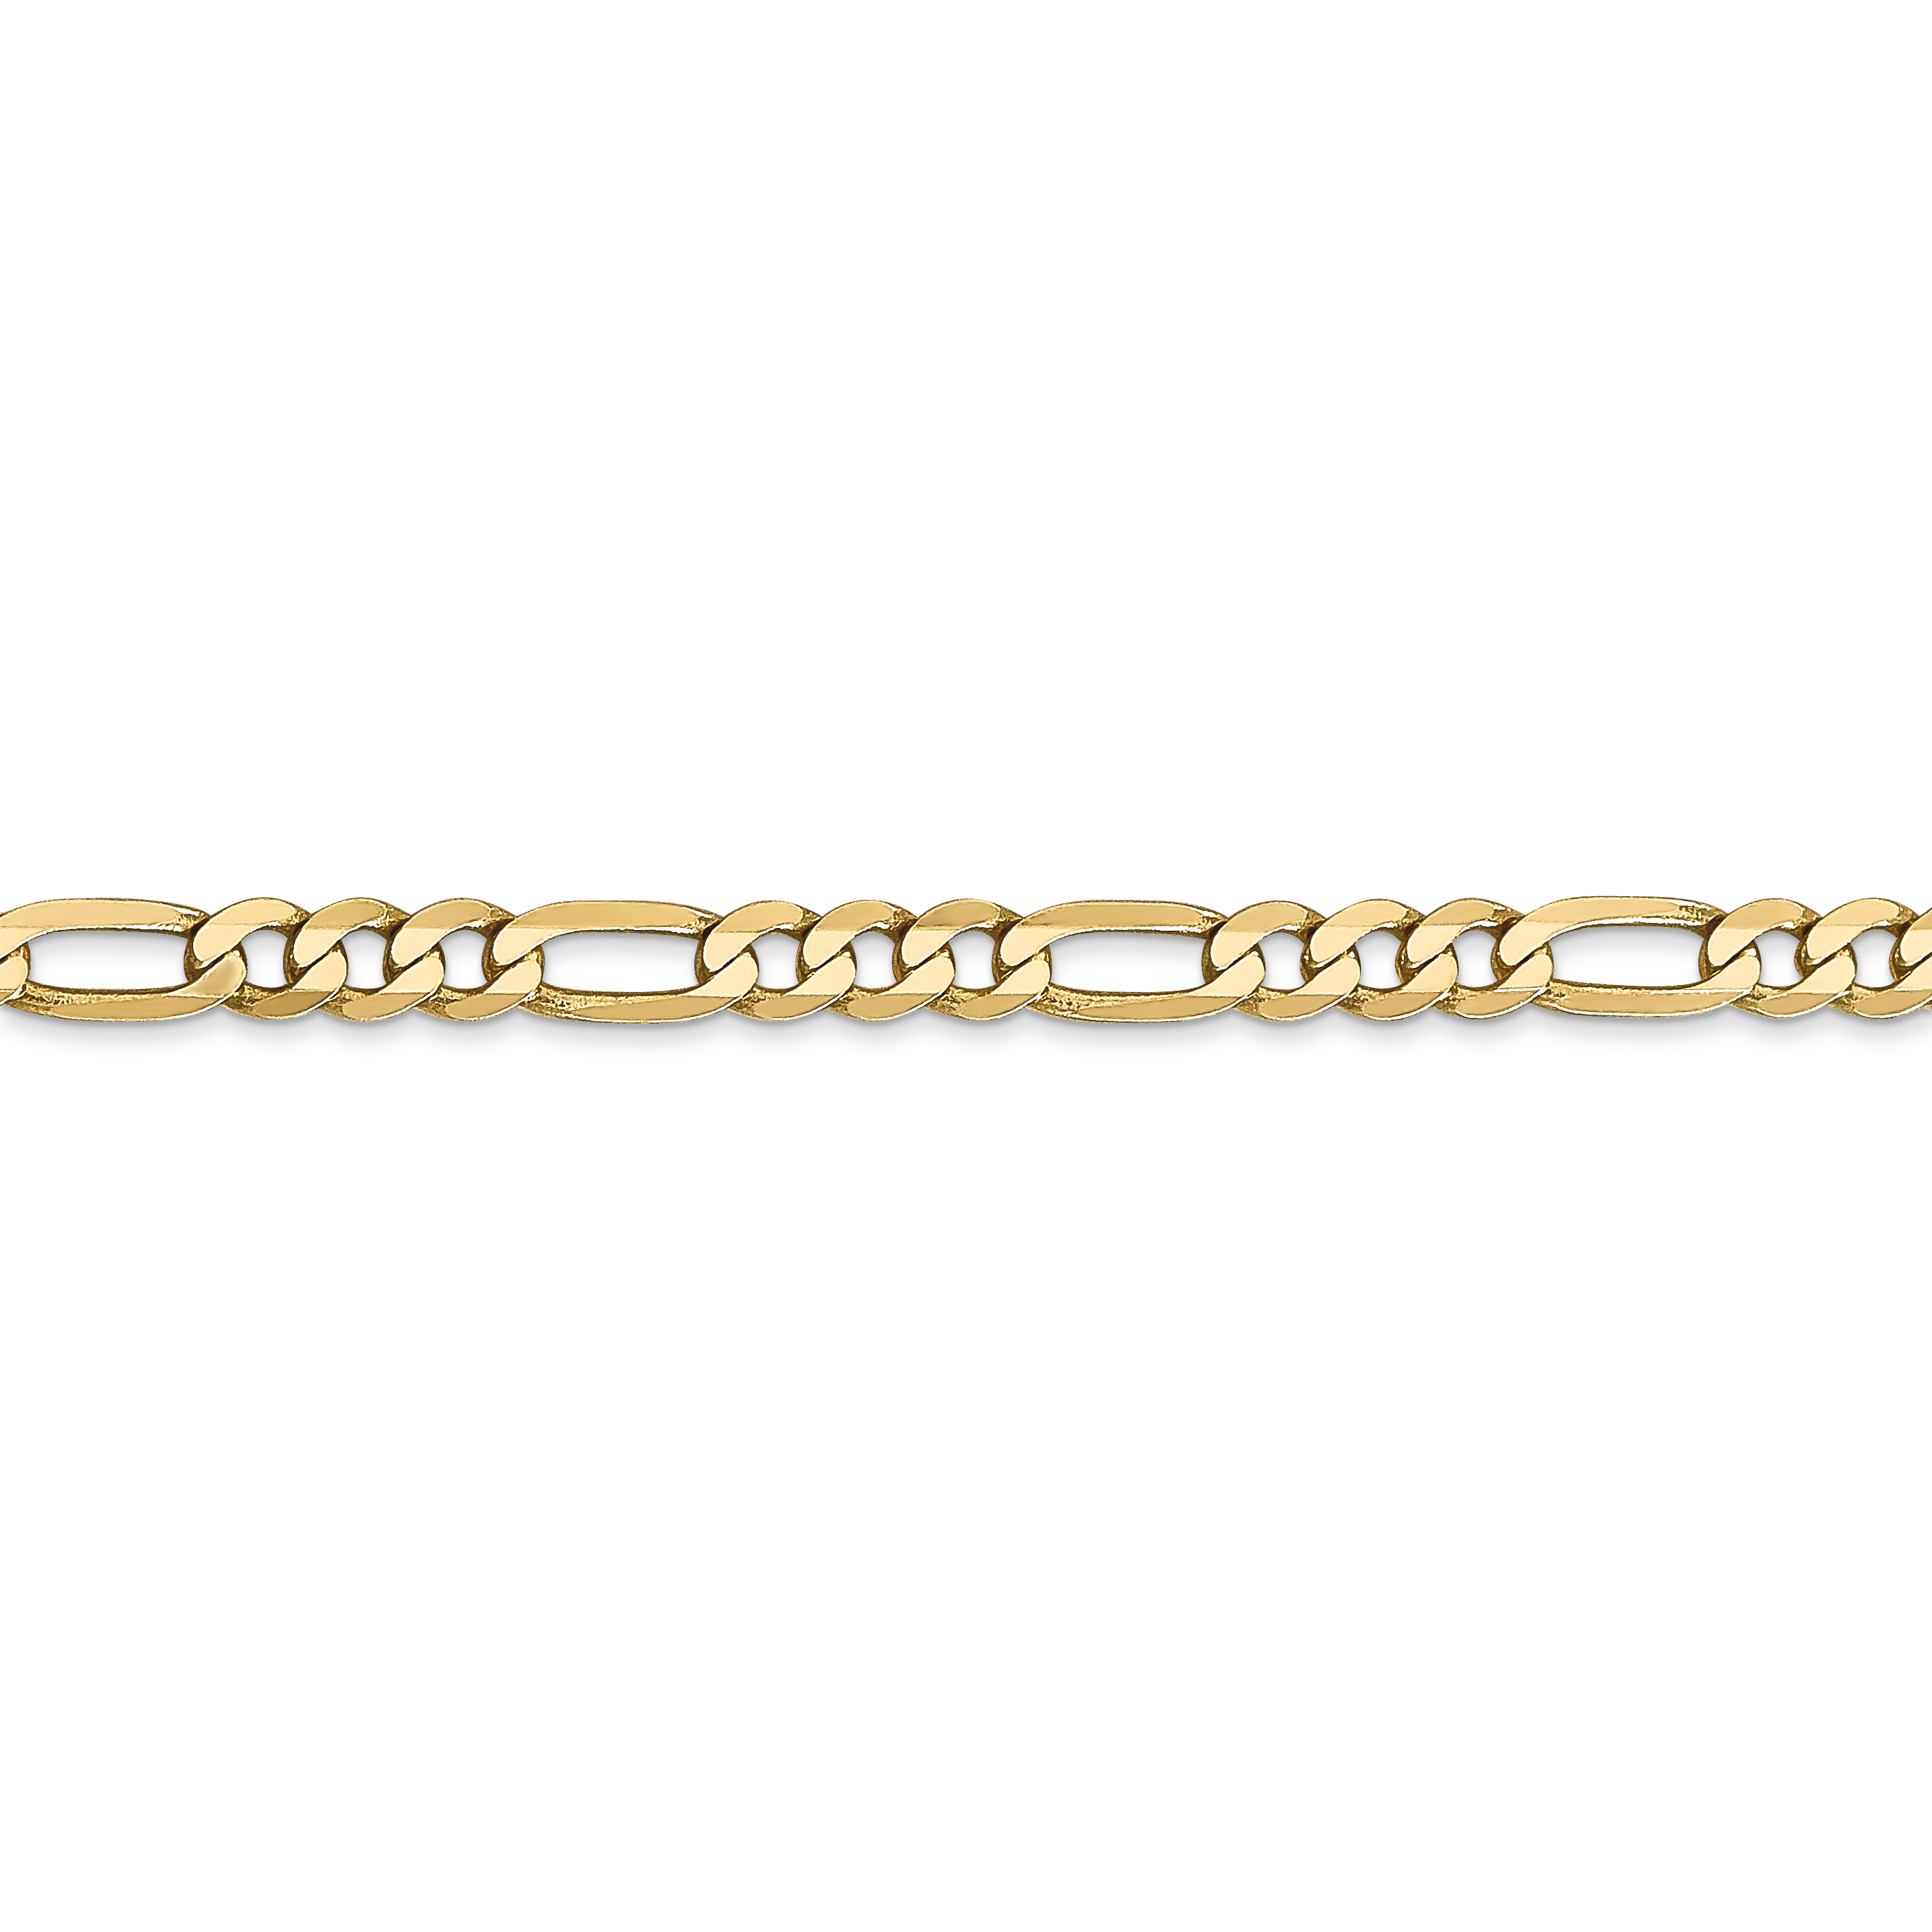 14k Yellow Gold 4mm Flat Link Figaro Bracelet Chain Beveled Fine Jewelry Gifts For Women For Her - image 3 of 4